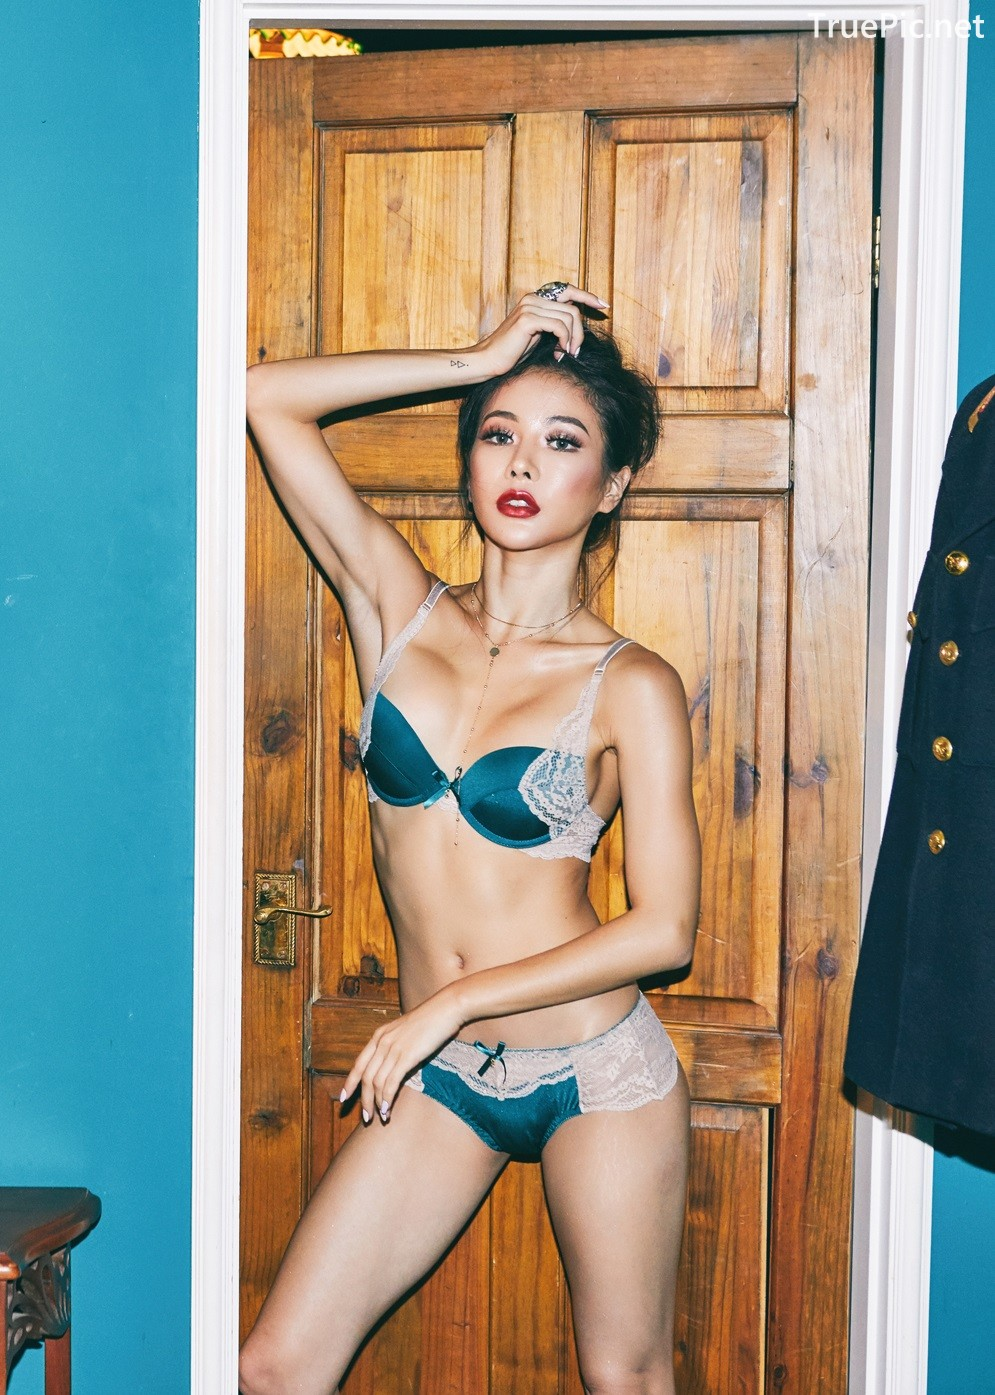 Image Korean Fashion Model - An Seo Rin - Green Camisole and Lingerie - TruePic.net - Picture-5